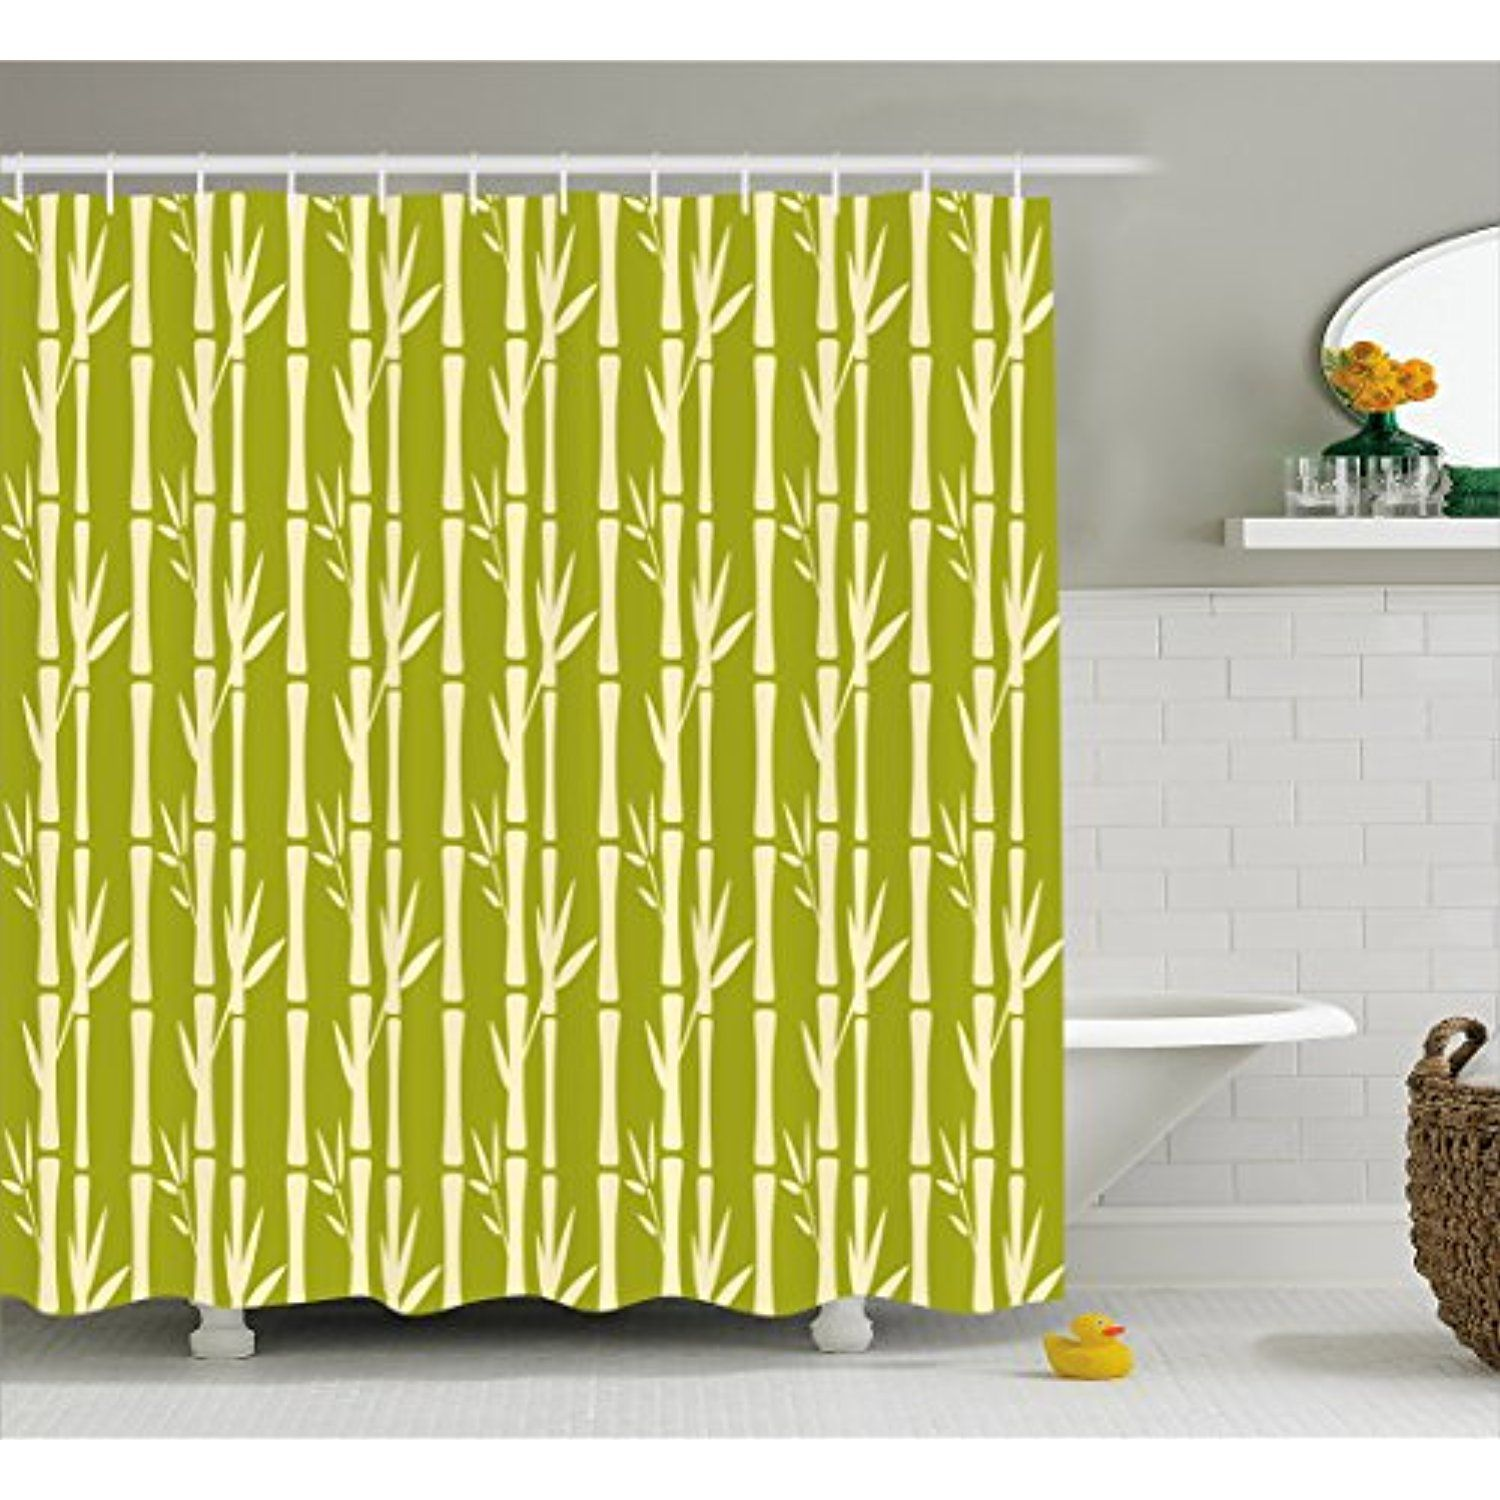 Bamboo Shower Curtain By Lunarable Abstract Bamboo Stems With